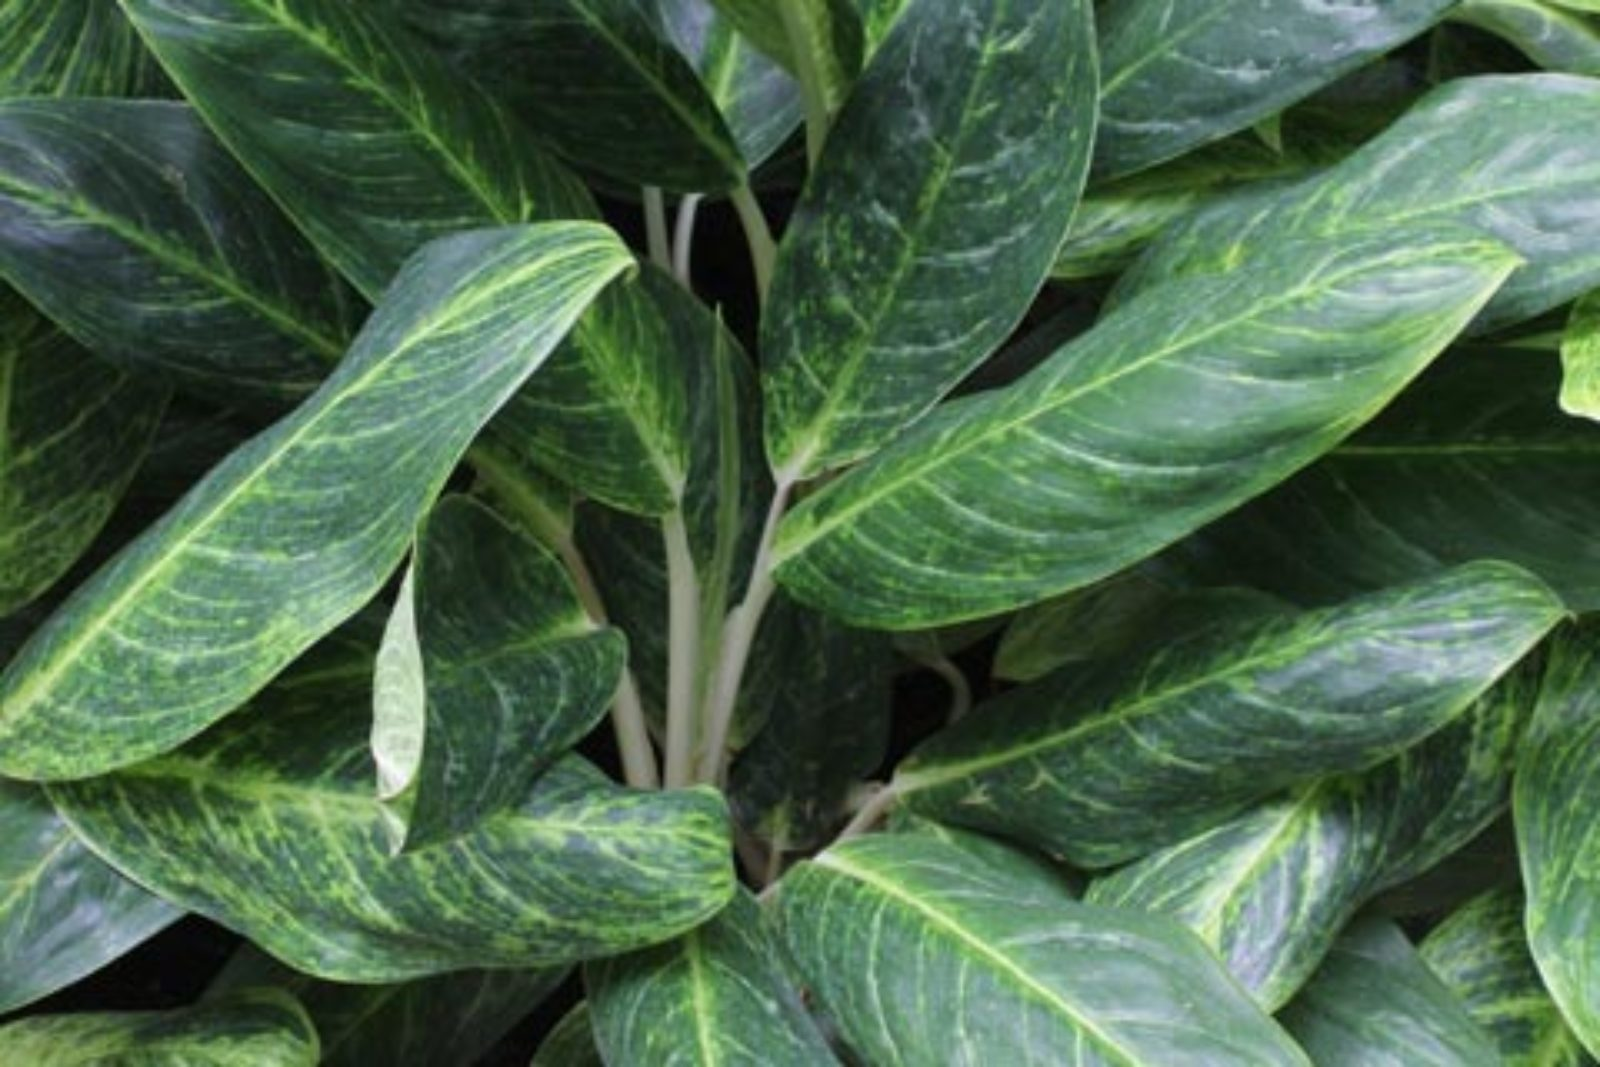 Aglaonema sp